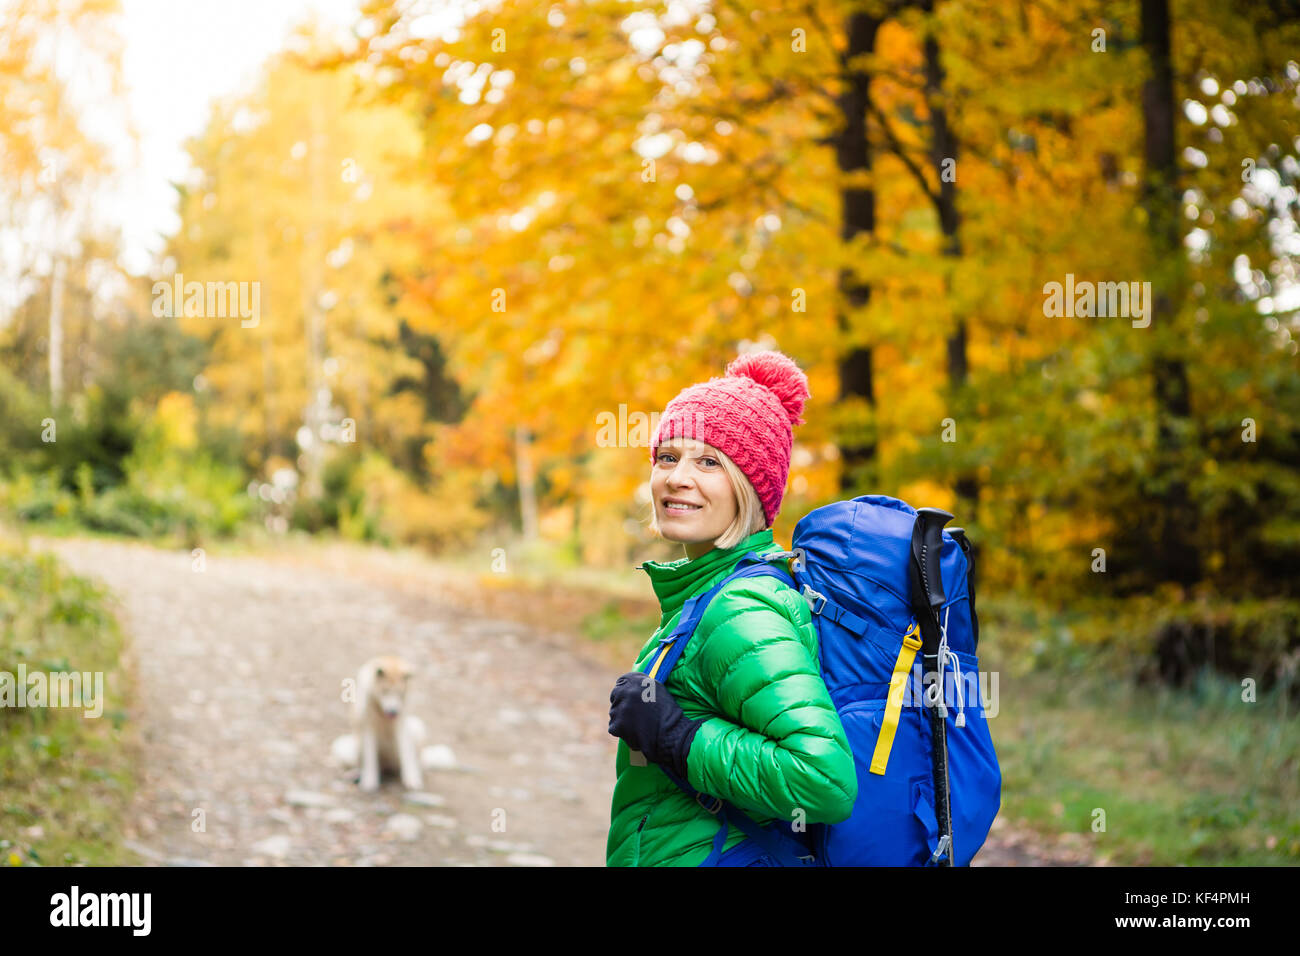 Hiking woman with backpack looking at camera and inspirational autumn golden woods. Fitness travel and healthy lifestyle - Stock Image